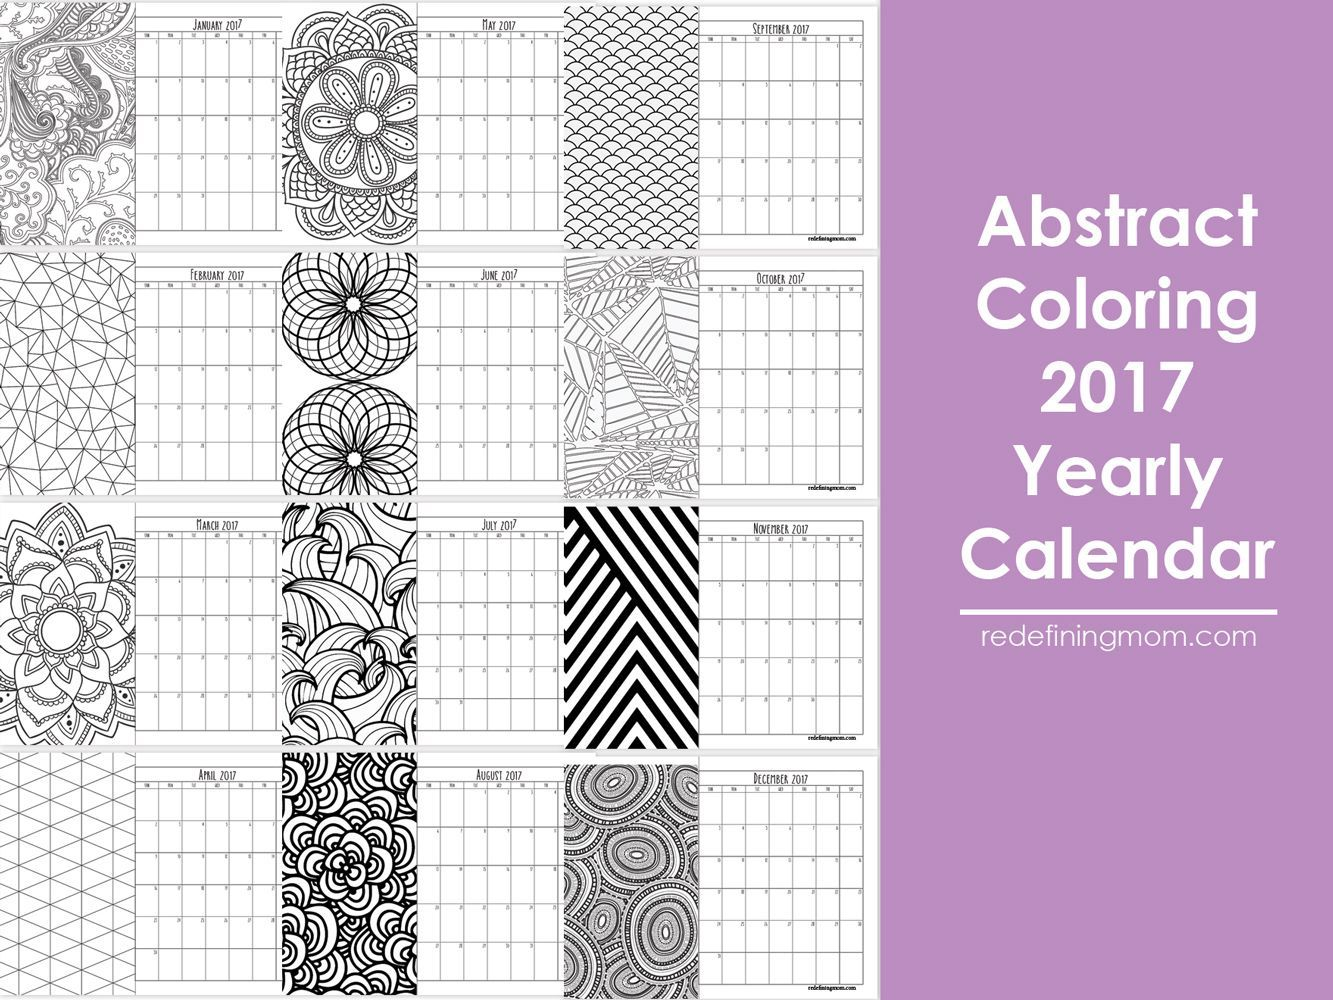 Abstract Adult Coloring Calendar Free Printable